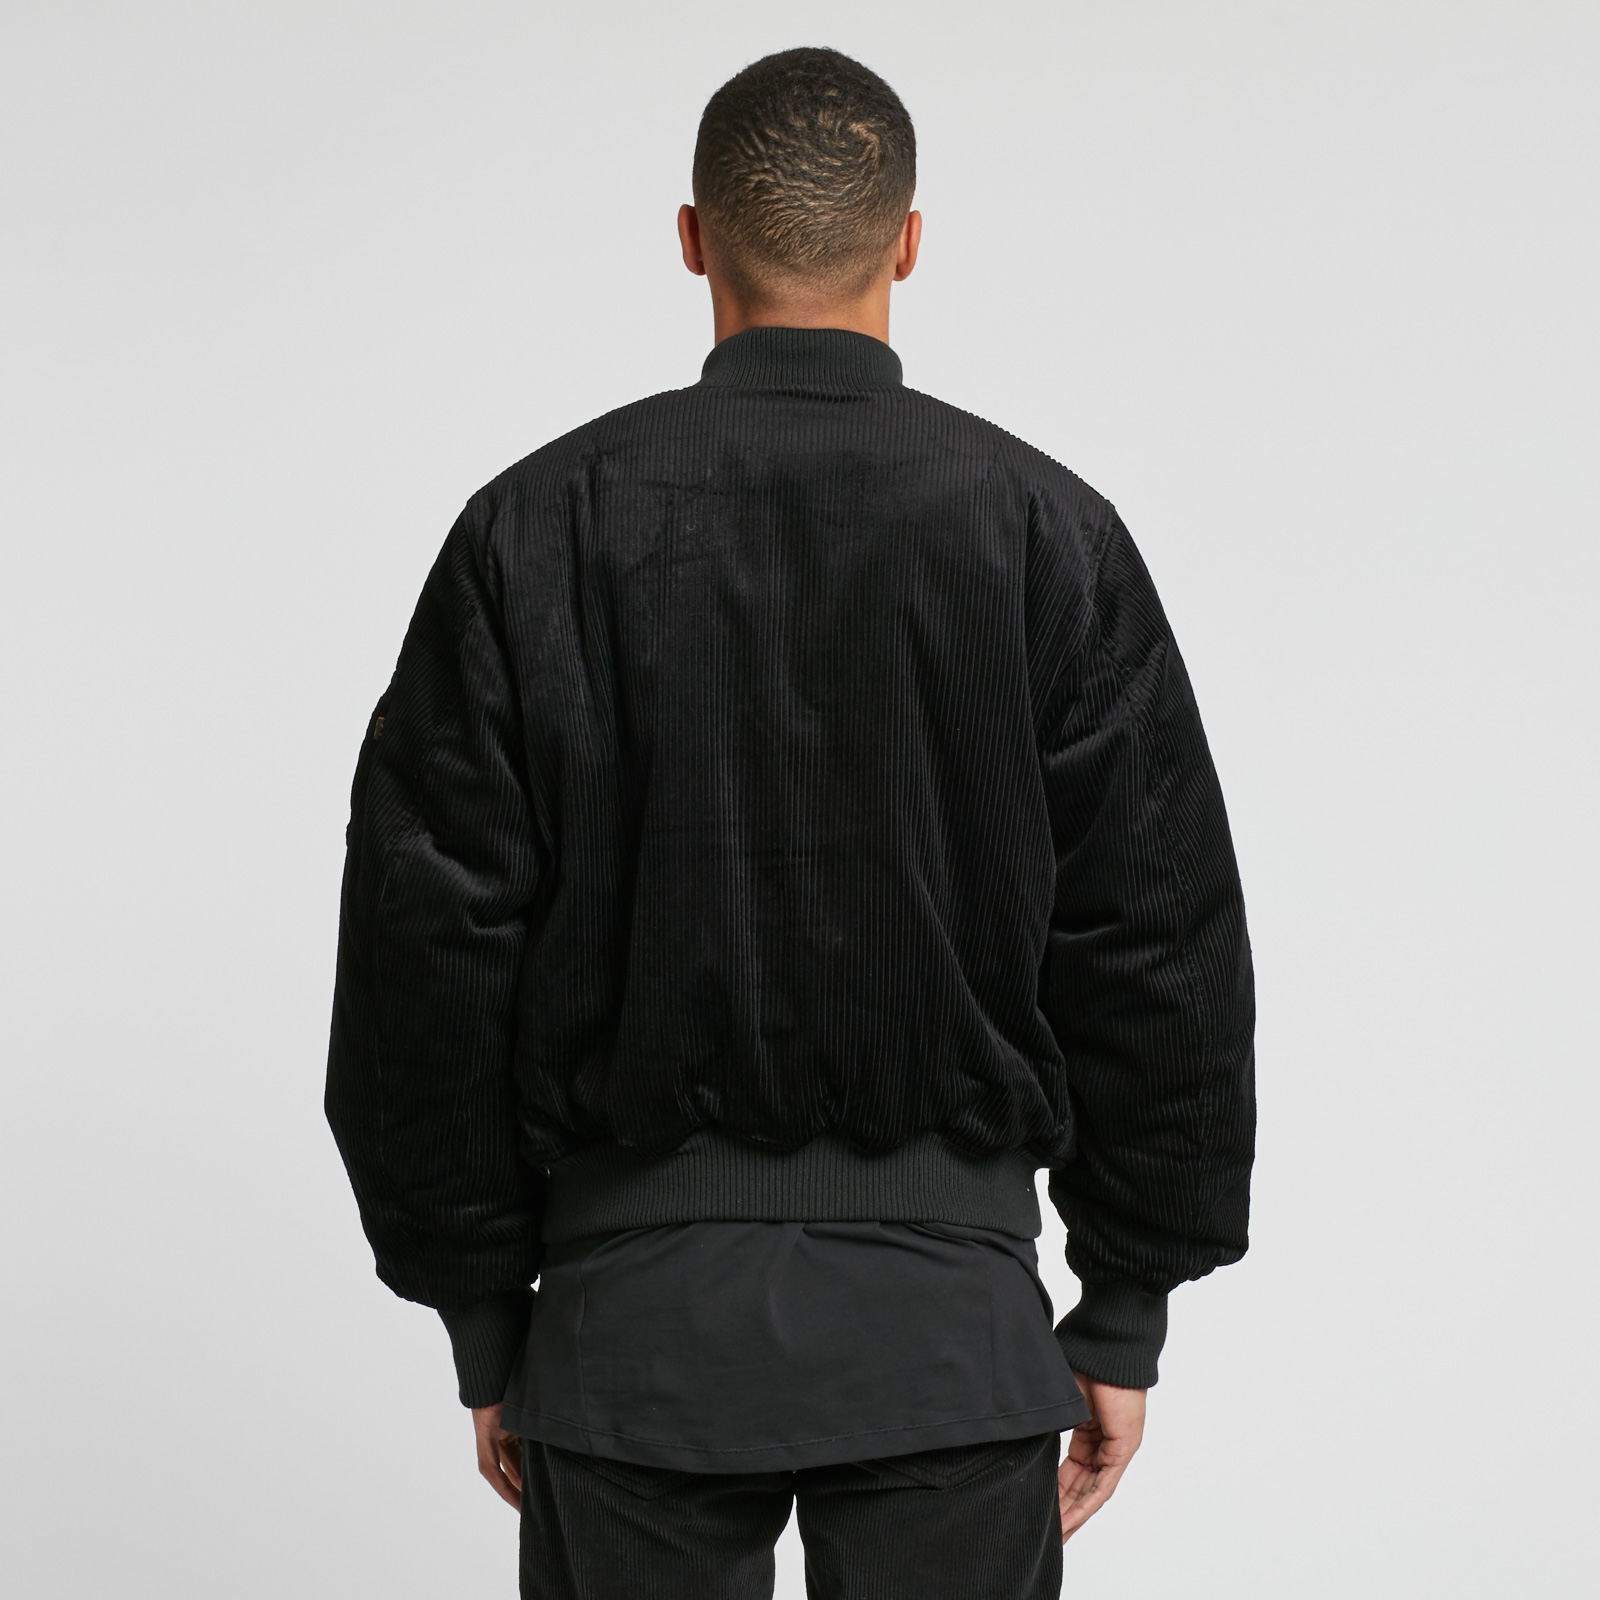 promo code 654f0 201cf The Cords & Co MA1 Bomber x Alpha Industries - 80081542-290 ...